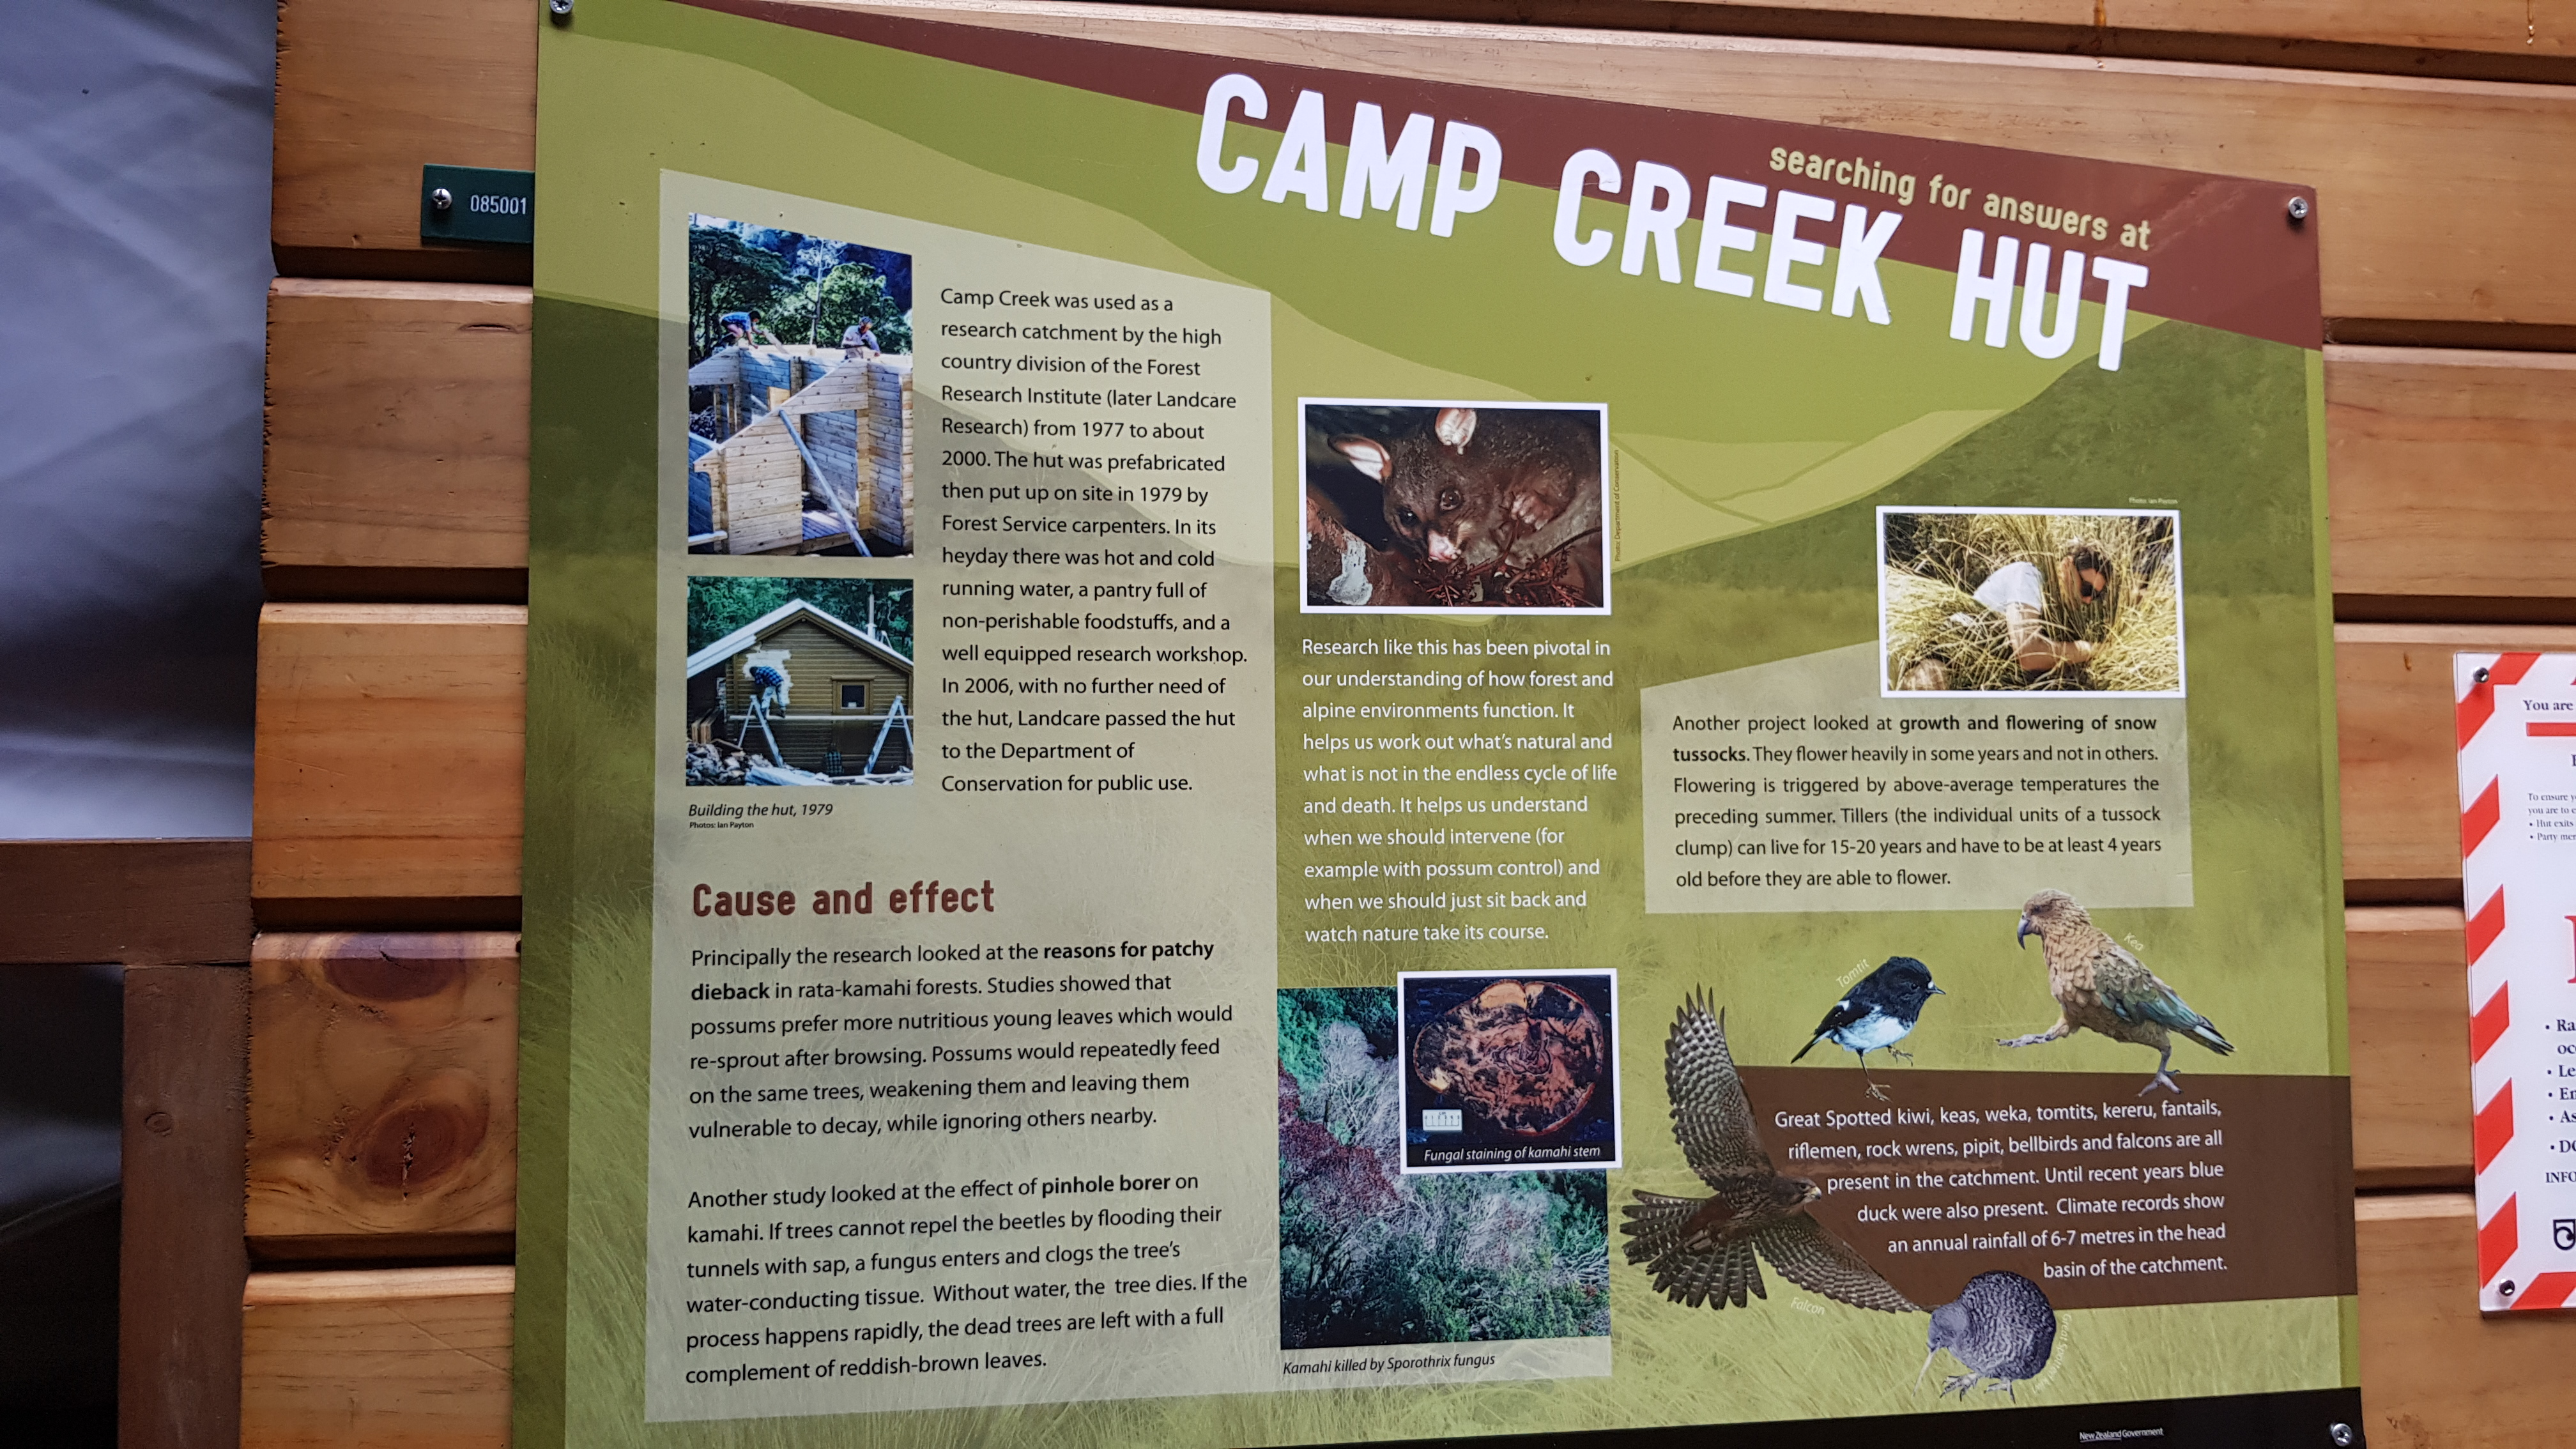 Some background on Camp Creek hut